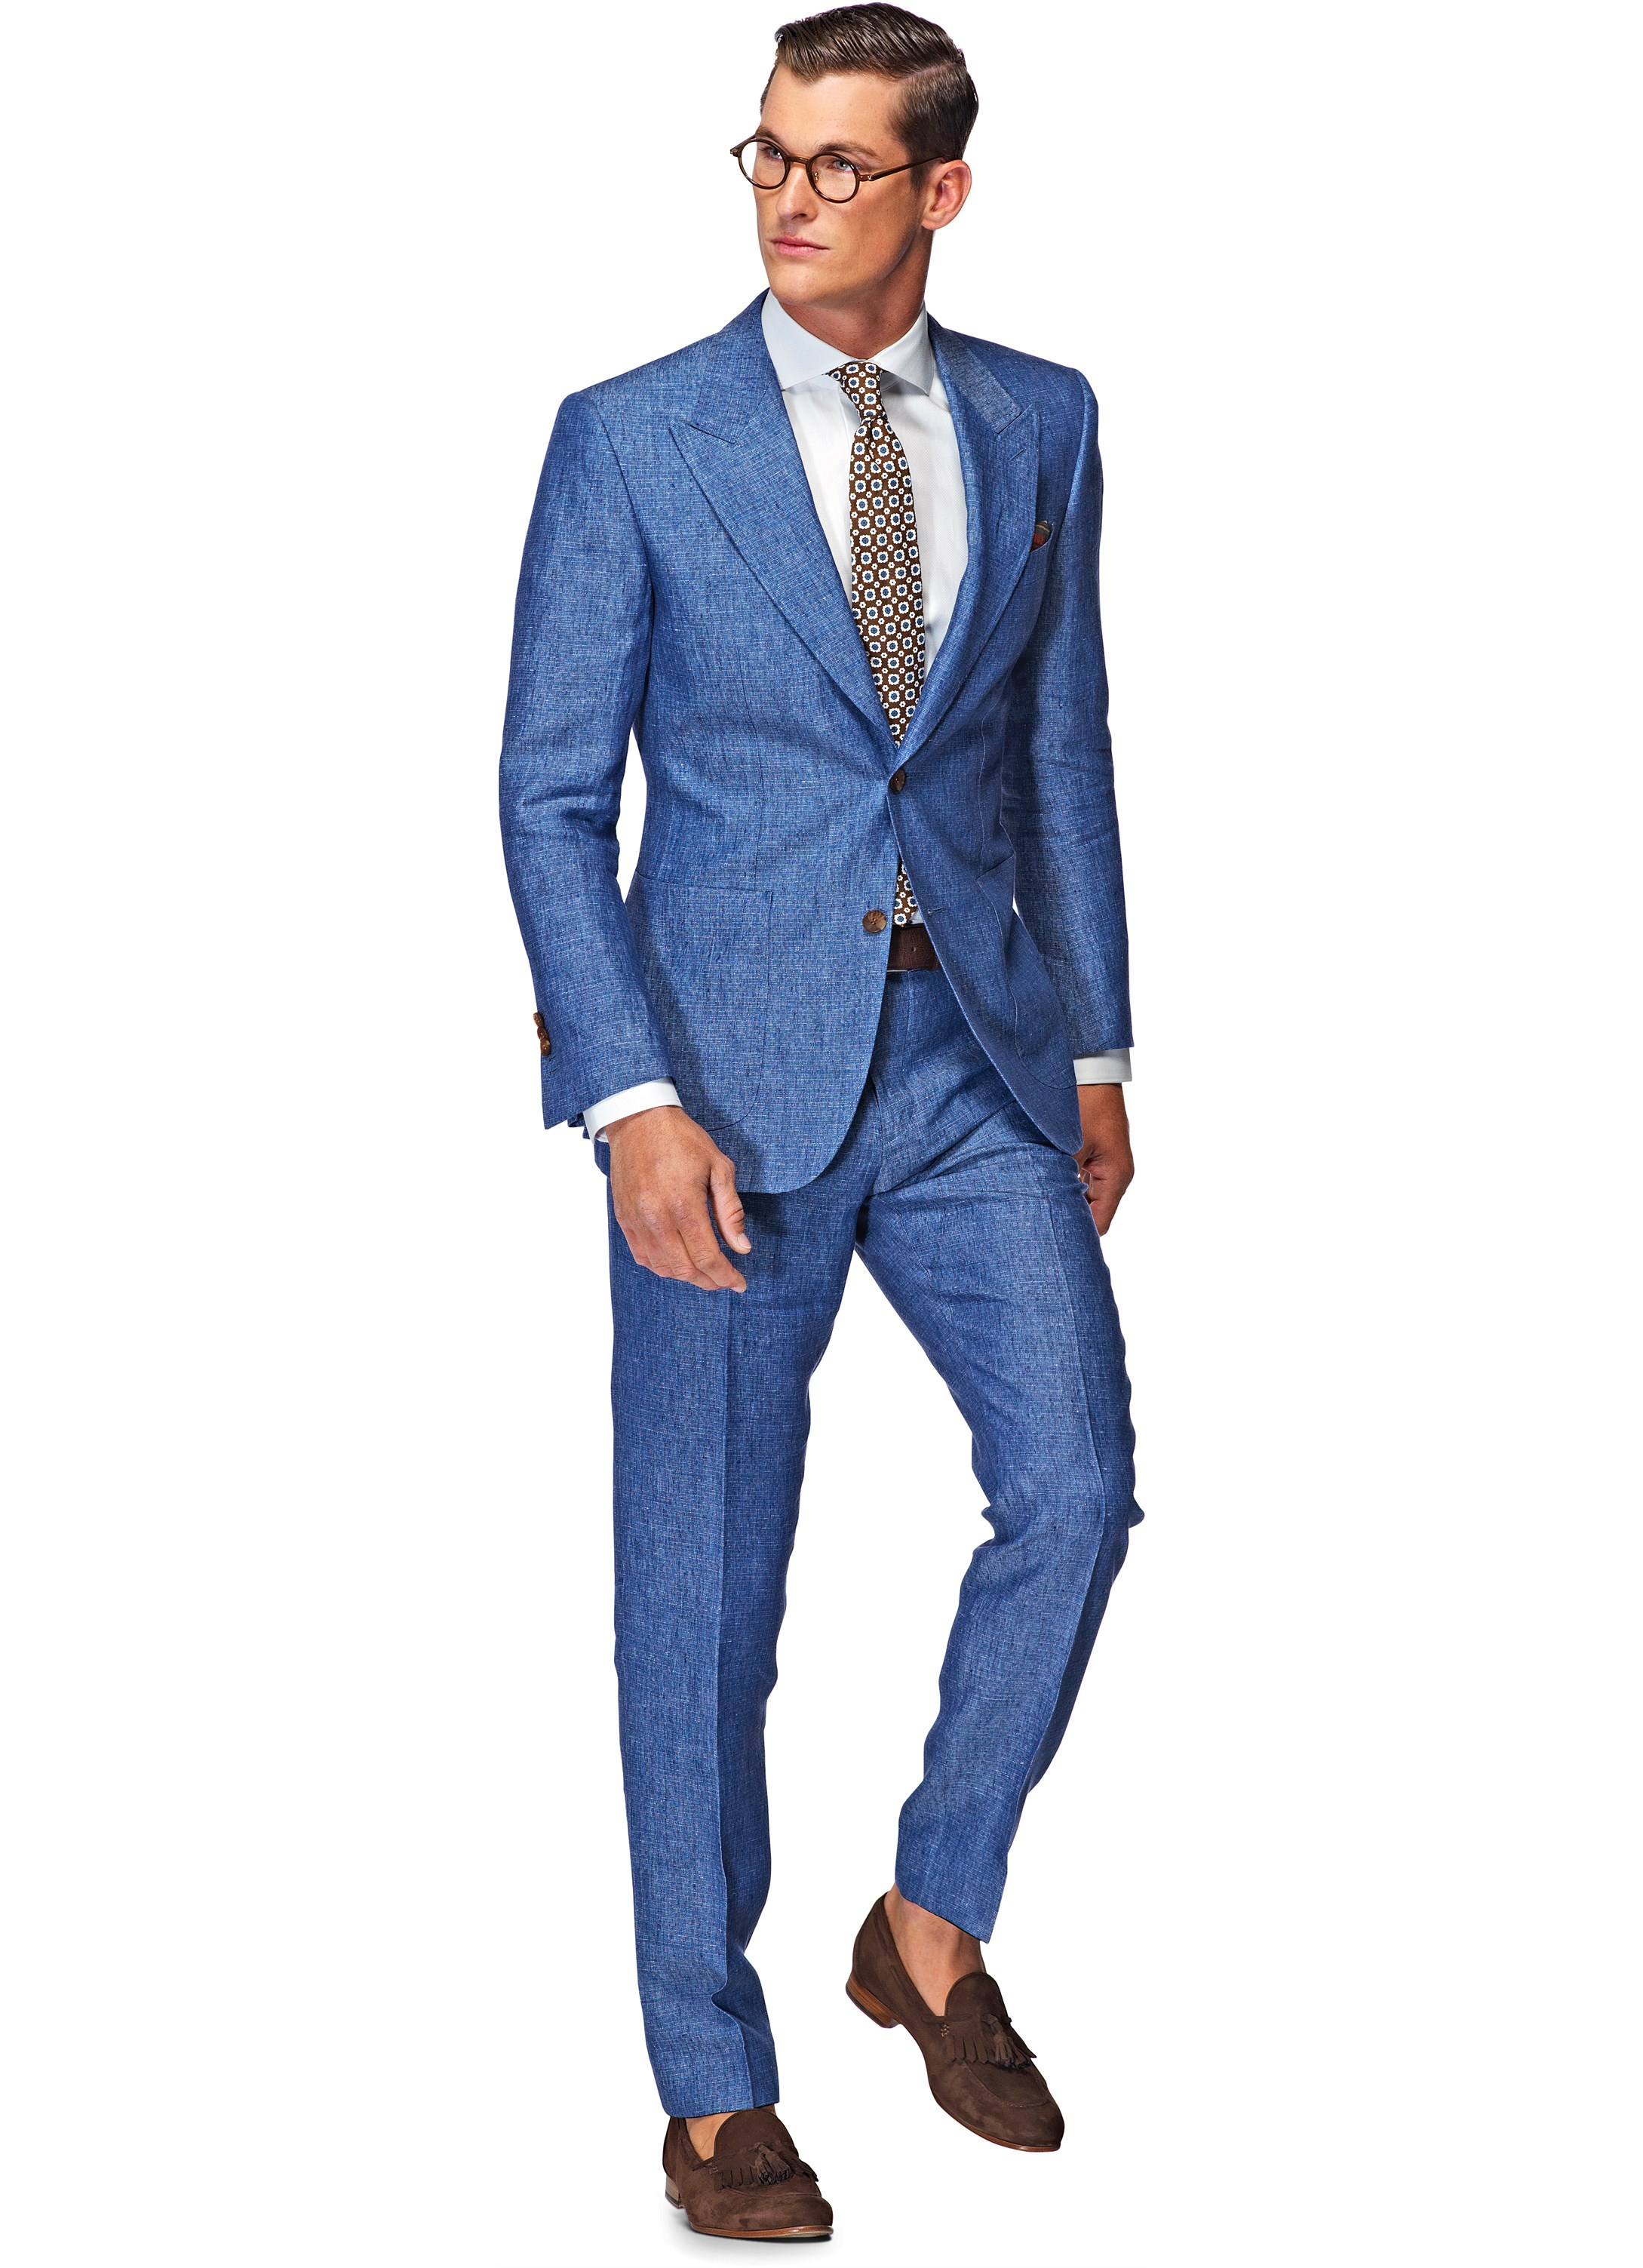 Blue Suit Images - Reverse Search